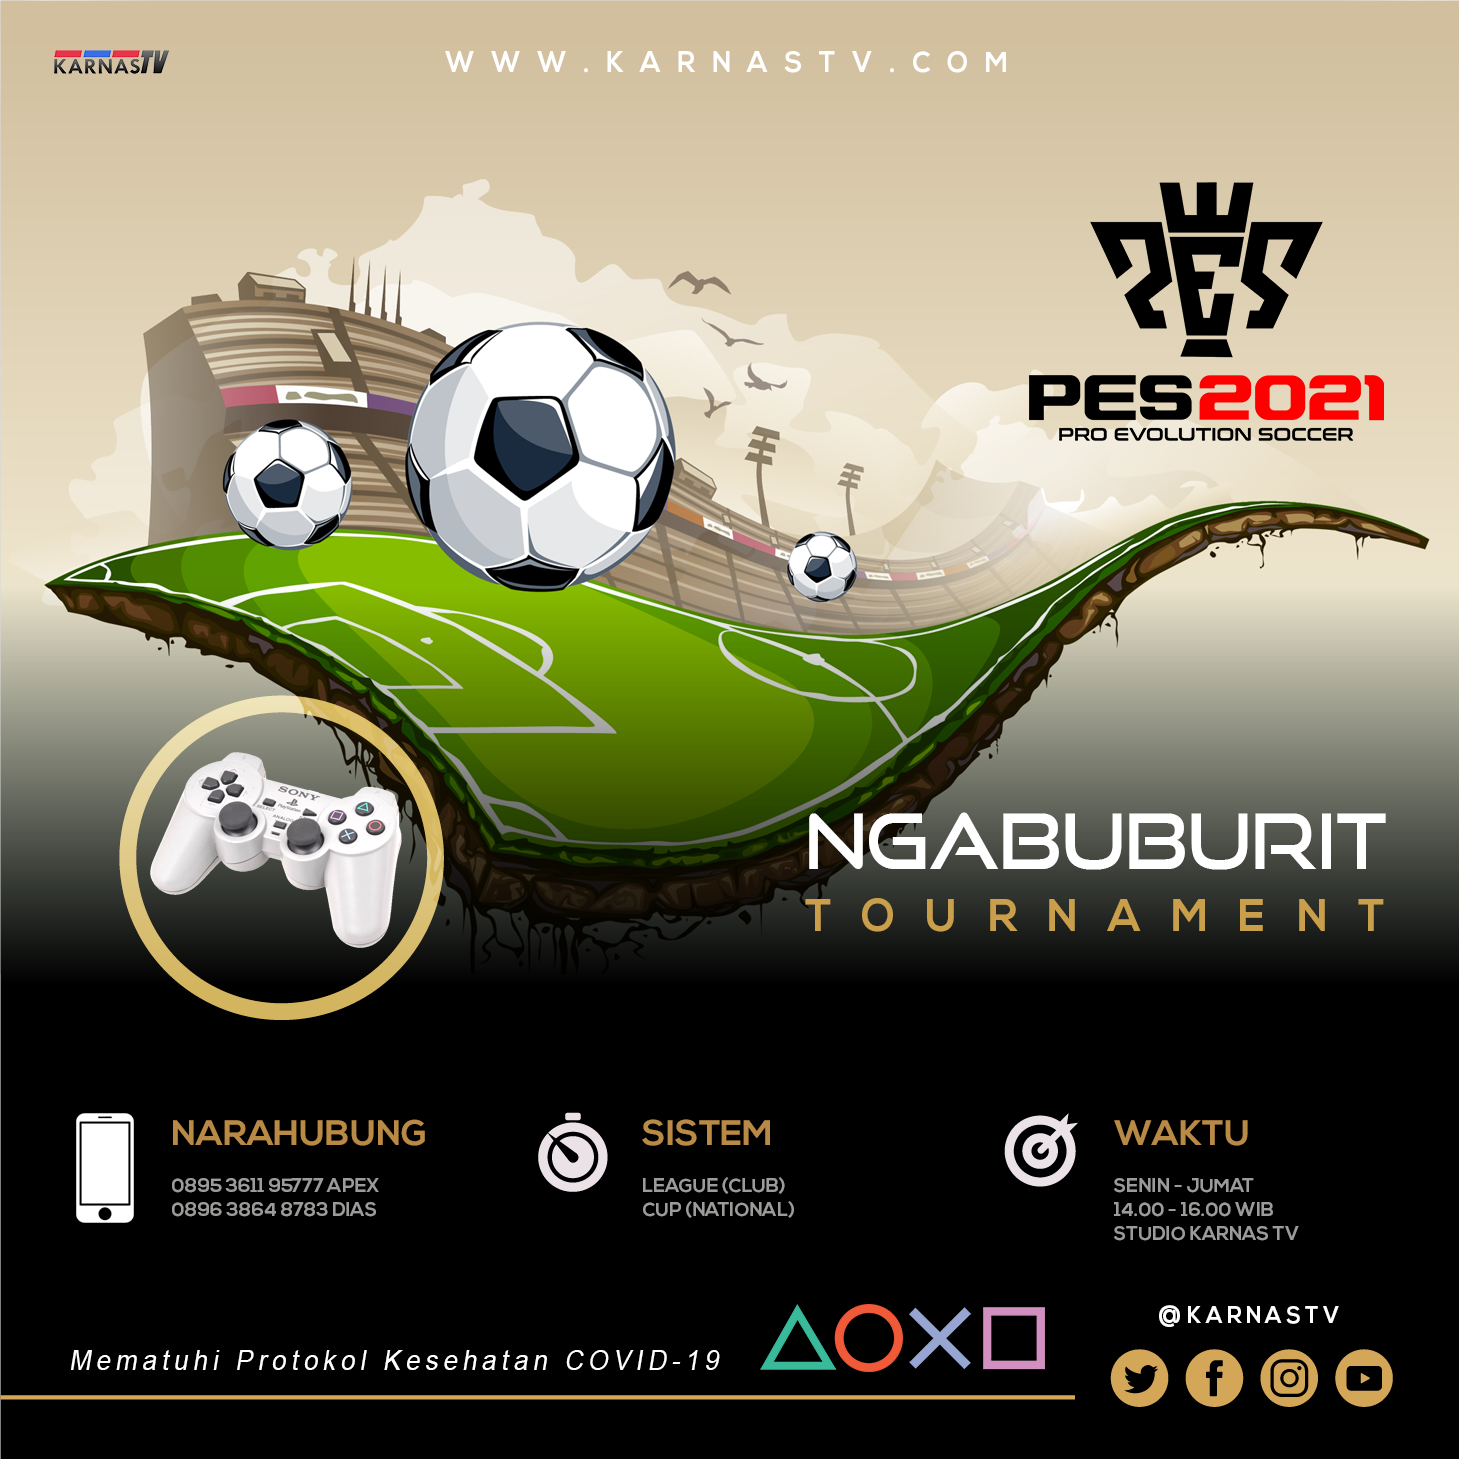 NGABUBURIT TOURNAMENT